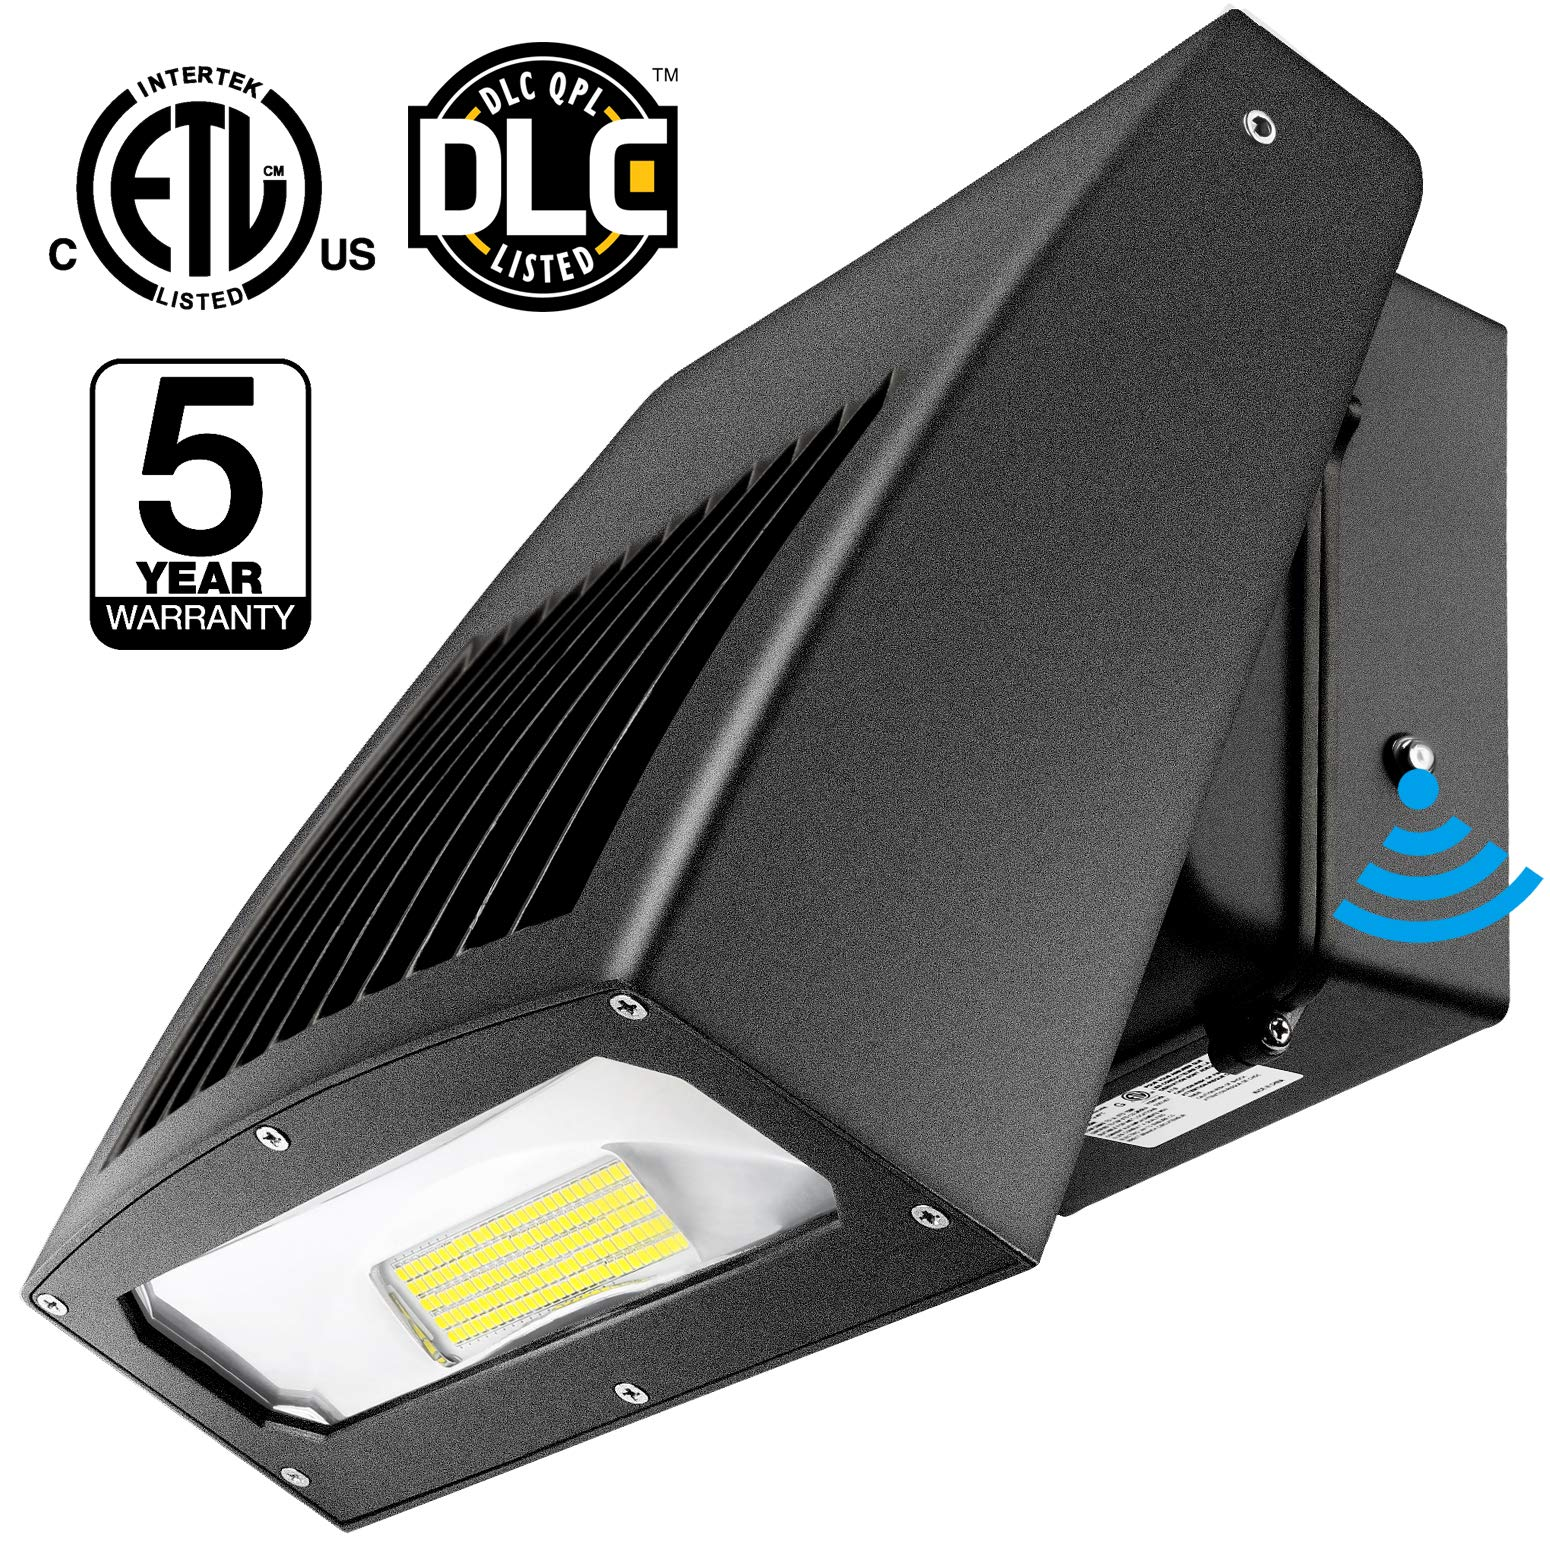 LEDMO 100W LED Wall Pack Light Full-Cutoff 11500LM 0-90° Adjustable Head with Dusk to Dawn Photocell 5000K, 500W HPS/HID Replacement, Outdoor Flood Light Commercial and Industrial Wall Pack Lighting